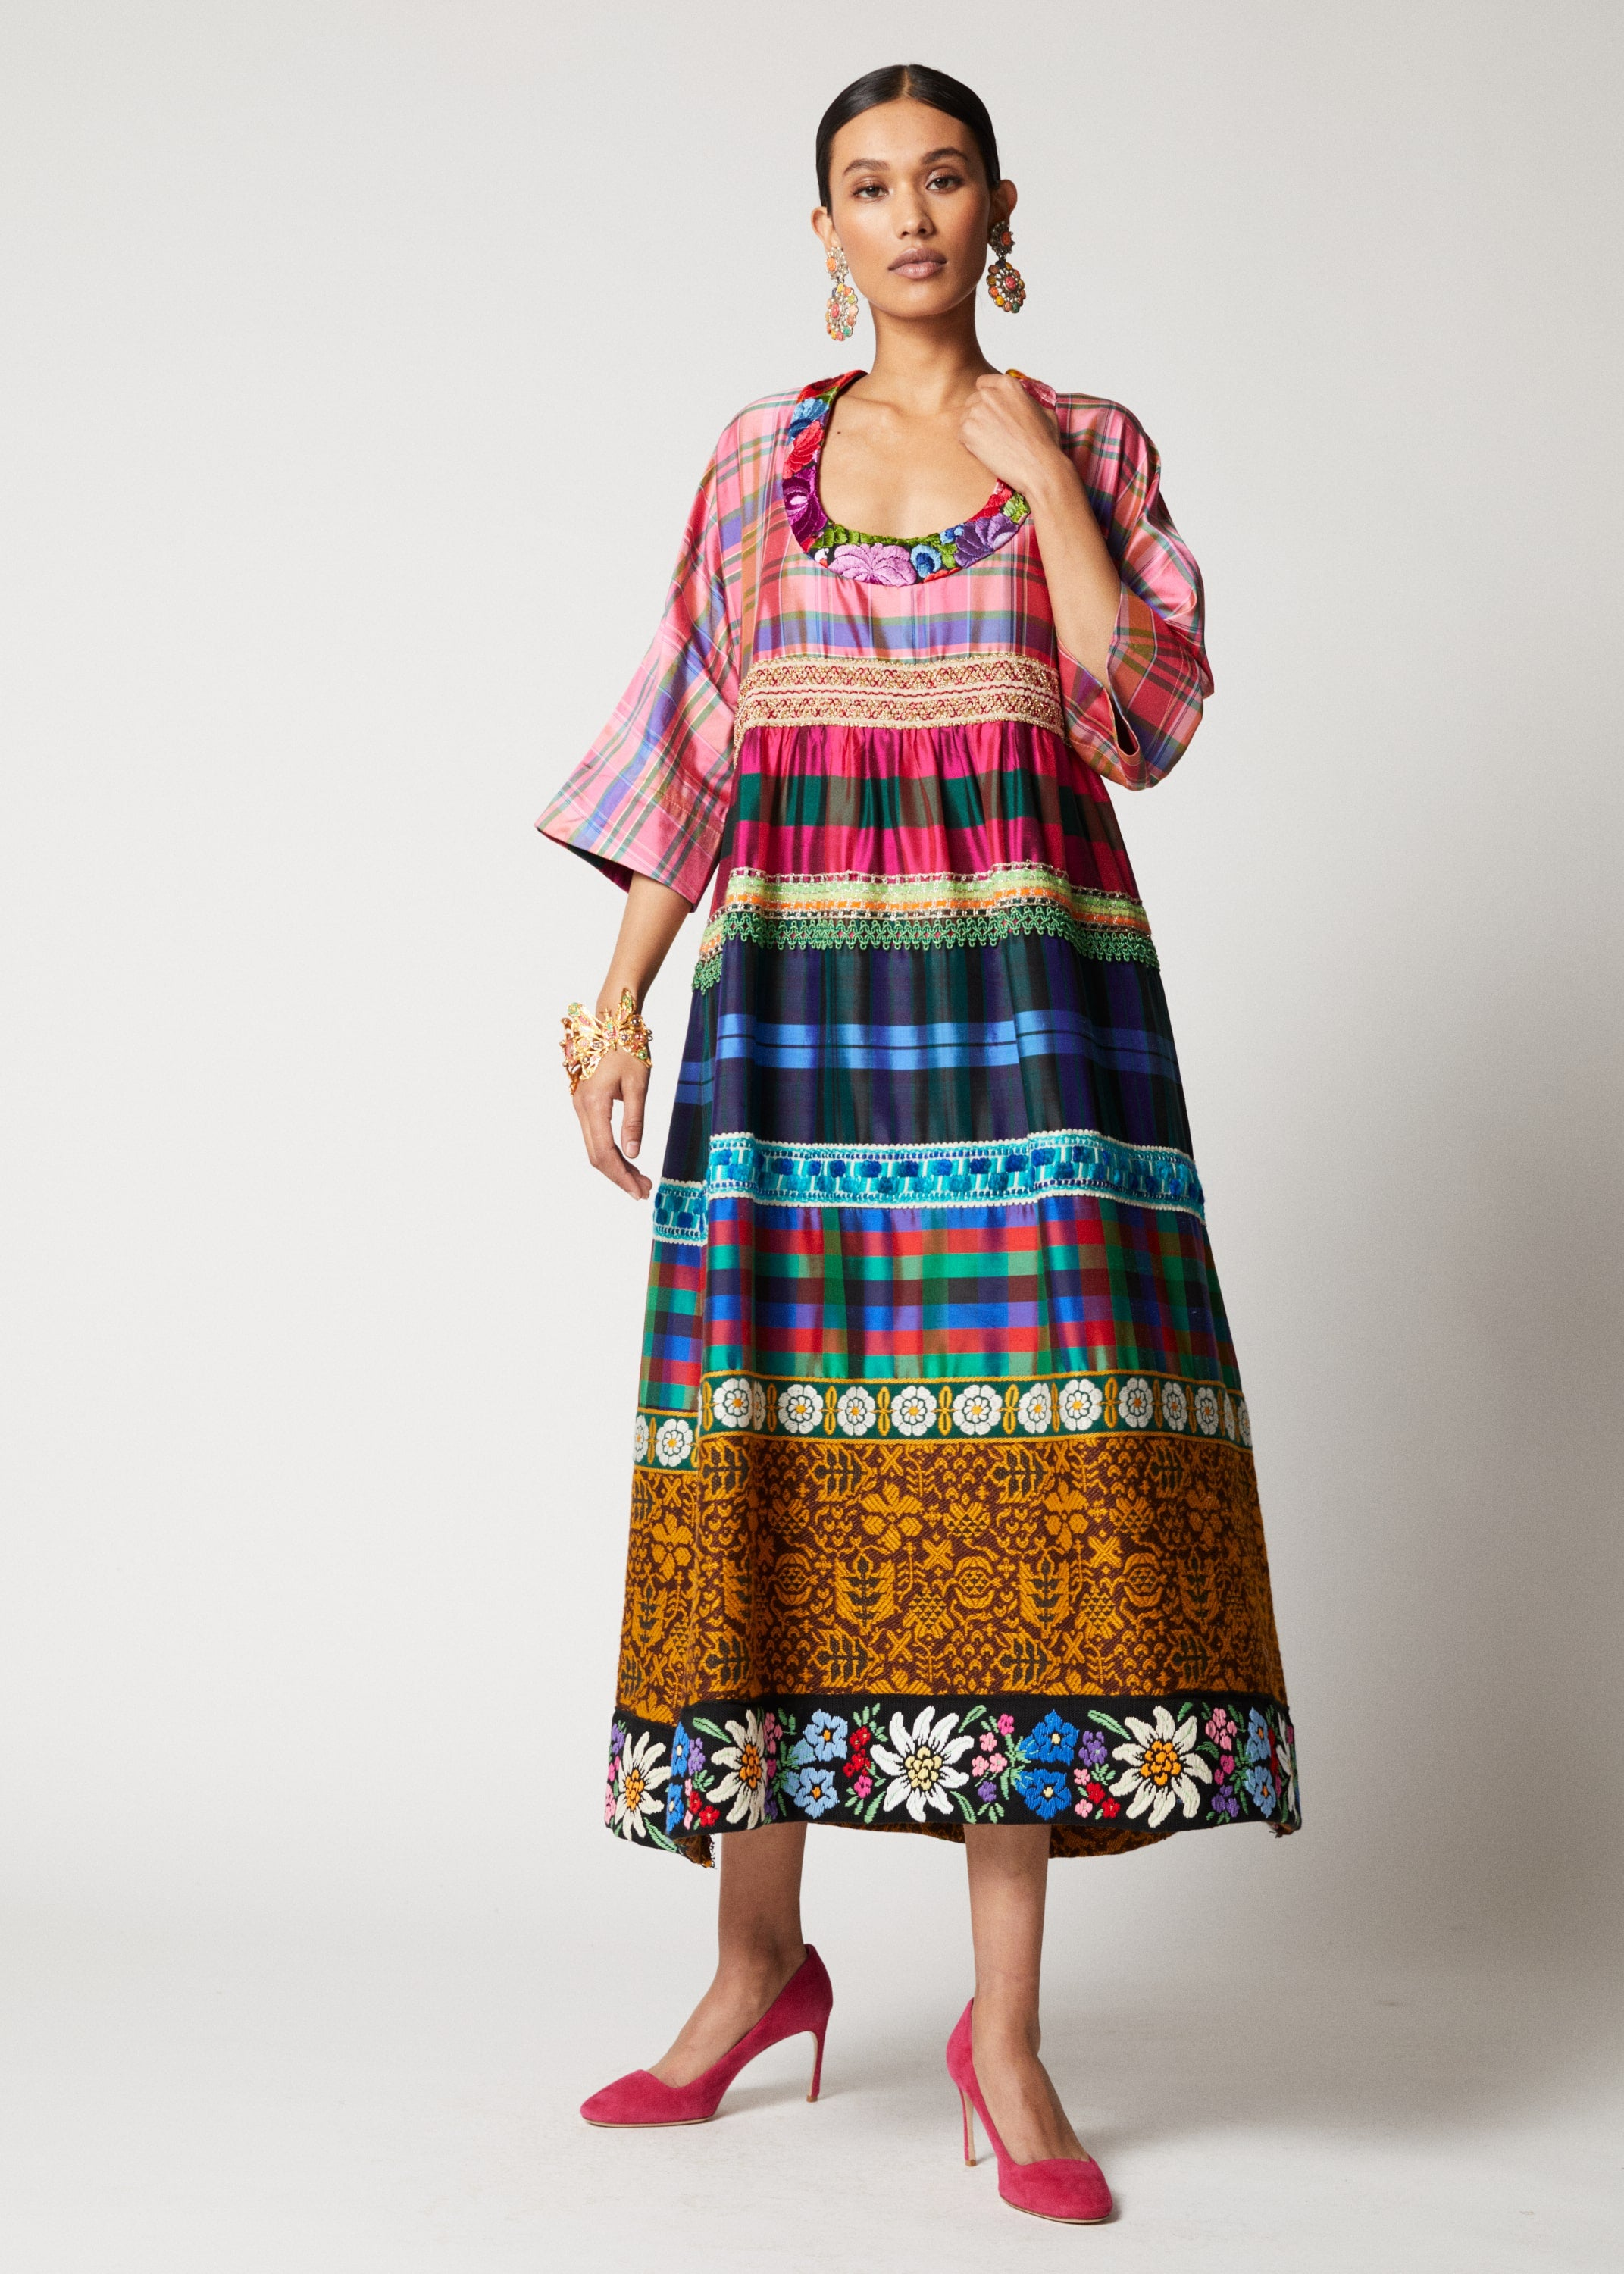 One-of-a-kind Traditional Round Neck Dress